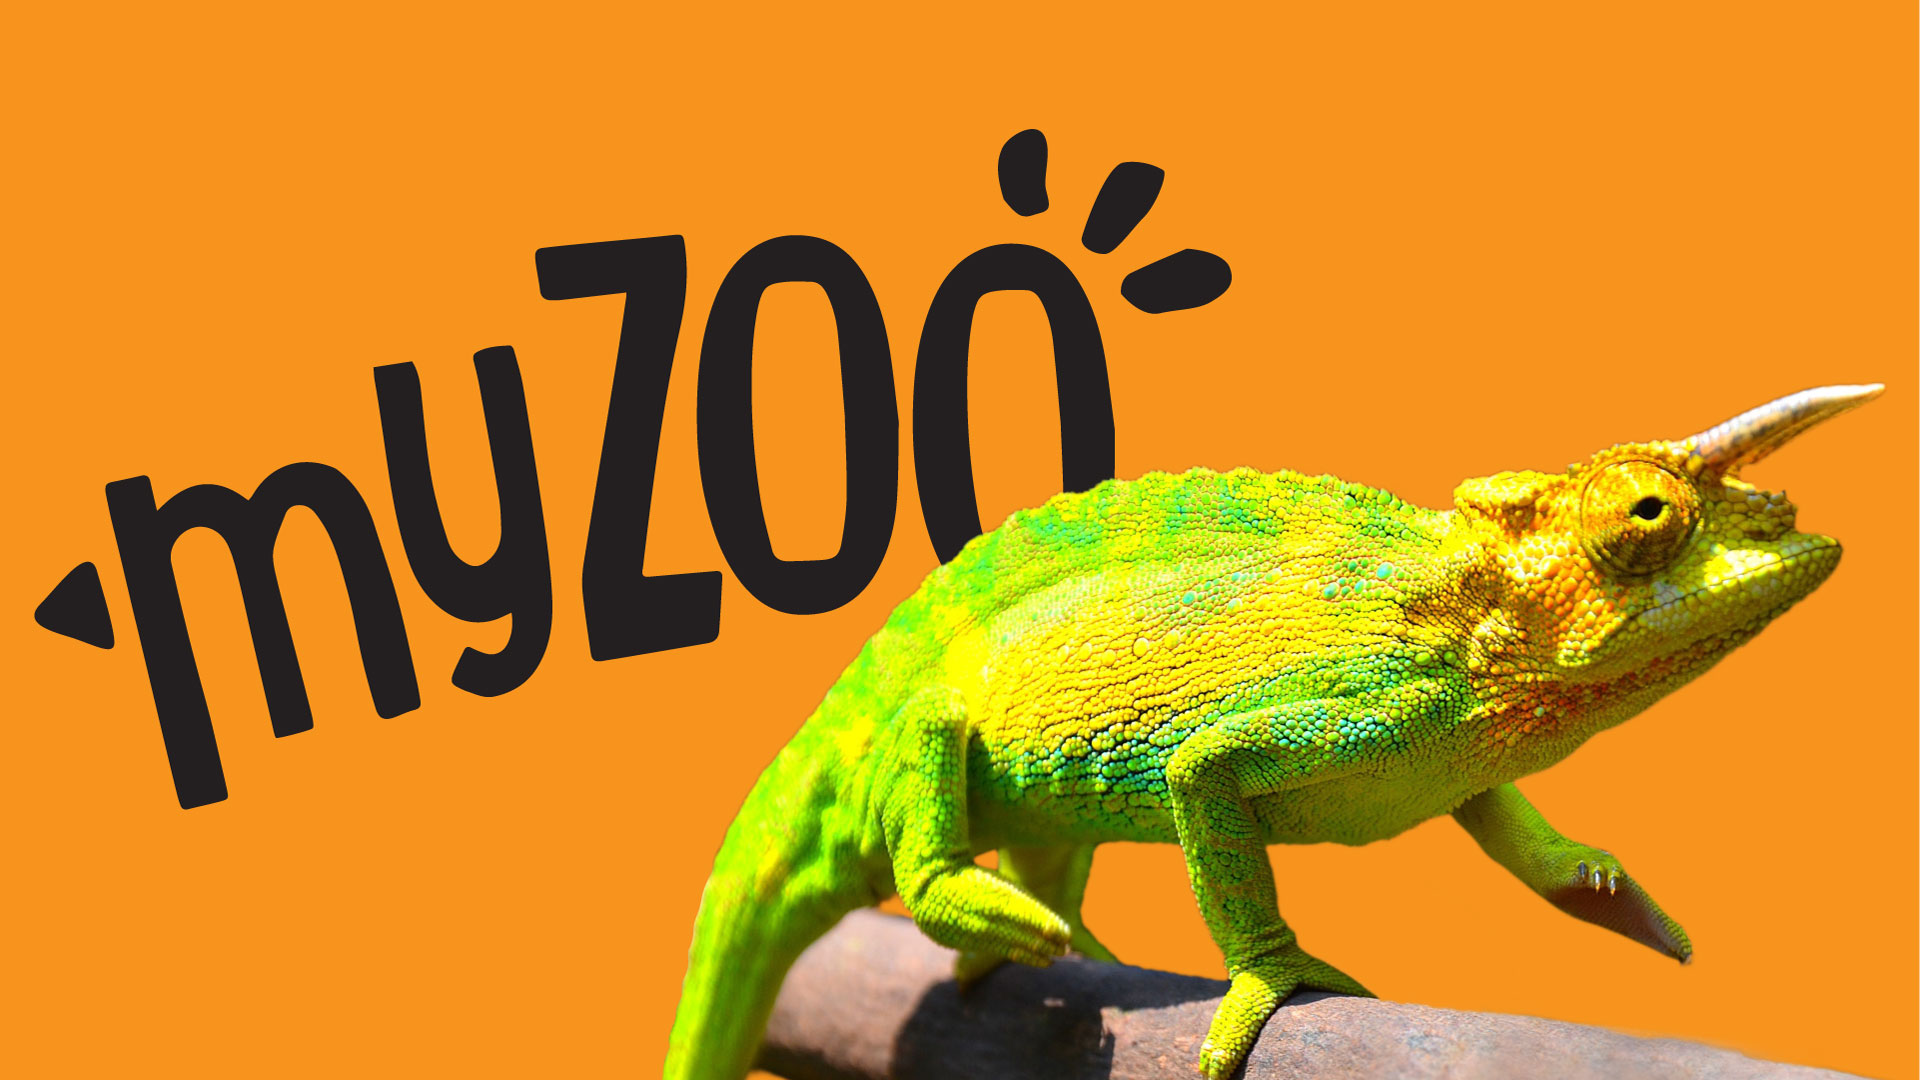 https://rfacdn.nz/zoo/assets/media/azoo-myzoo-chameleon.jpg